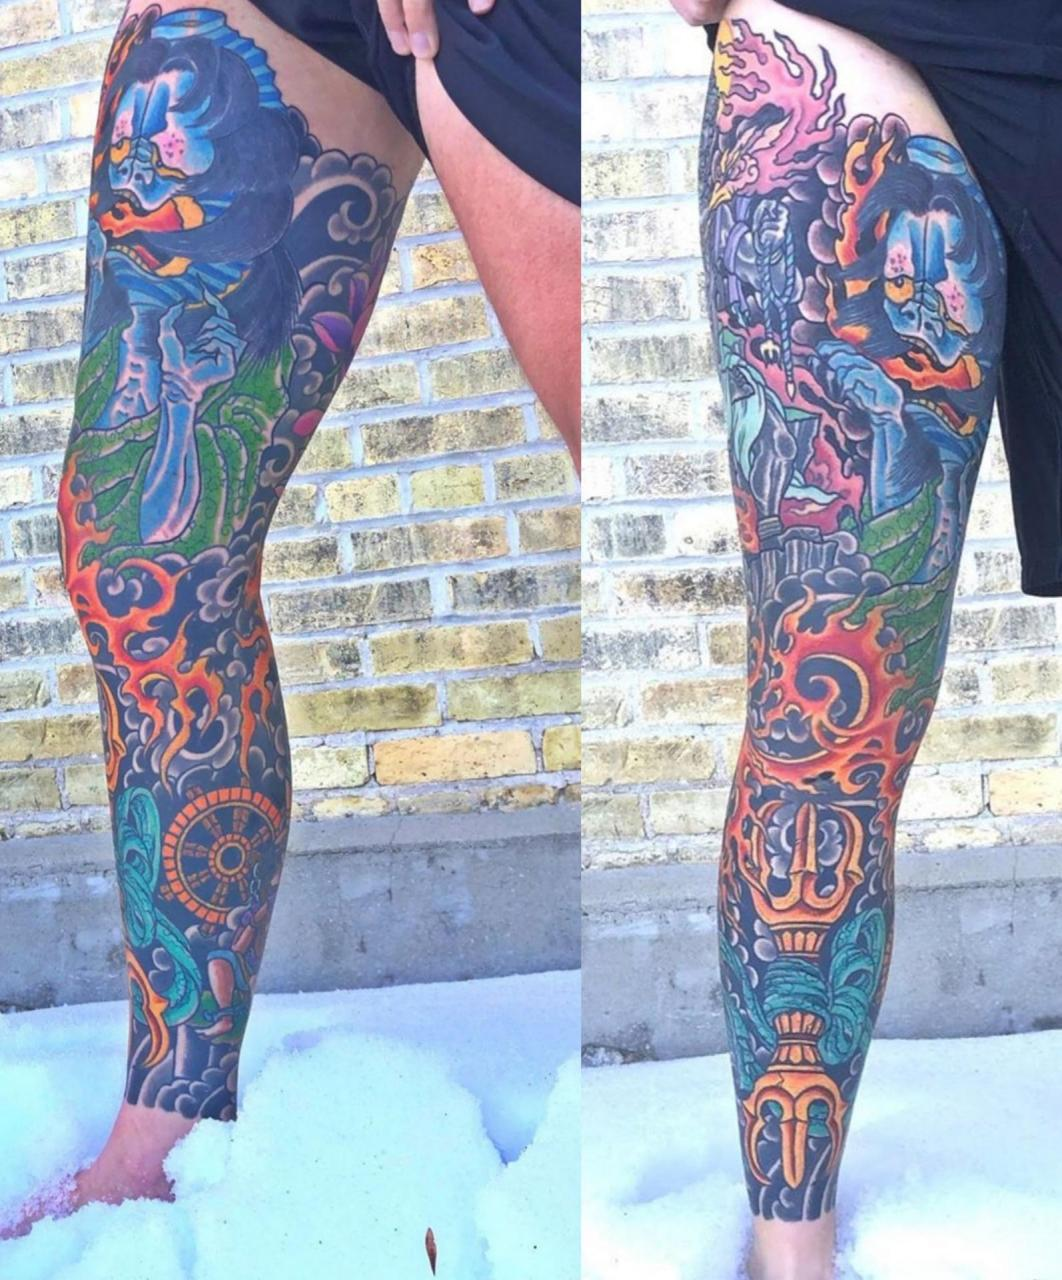 Finally got my leg sleeve coloured in by Mark Longenecker in back to back days up at the Winnipeg tattoo show